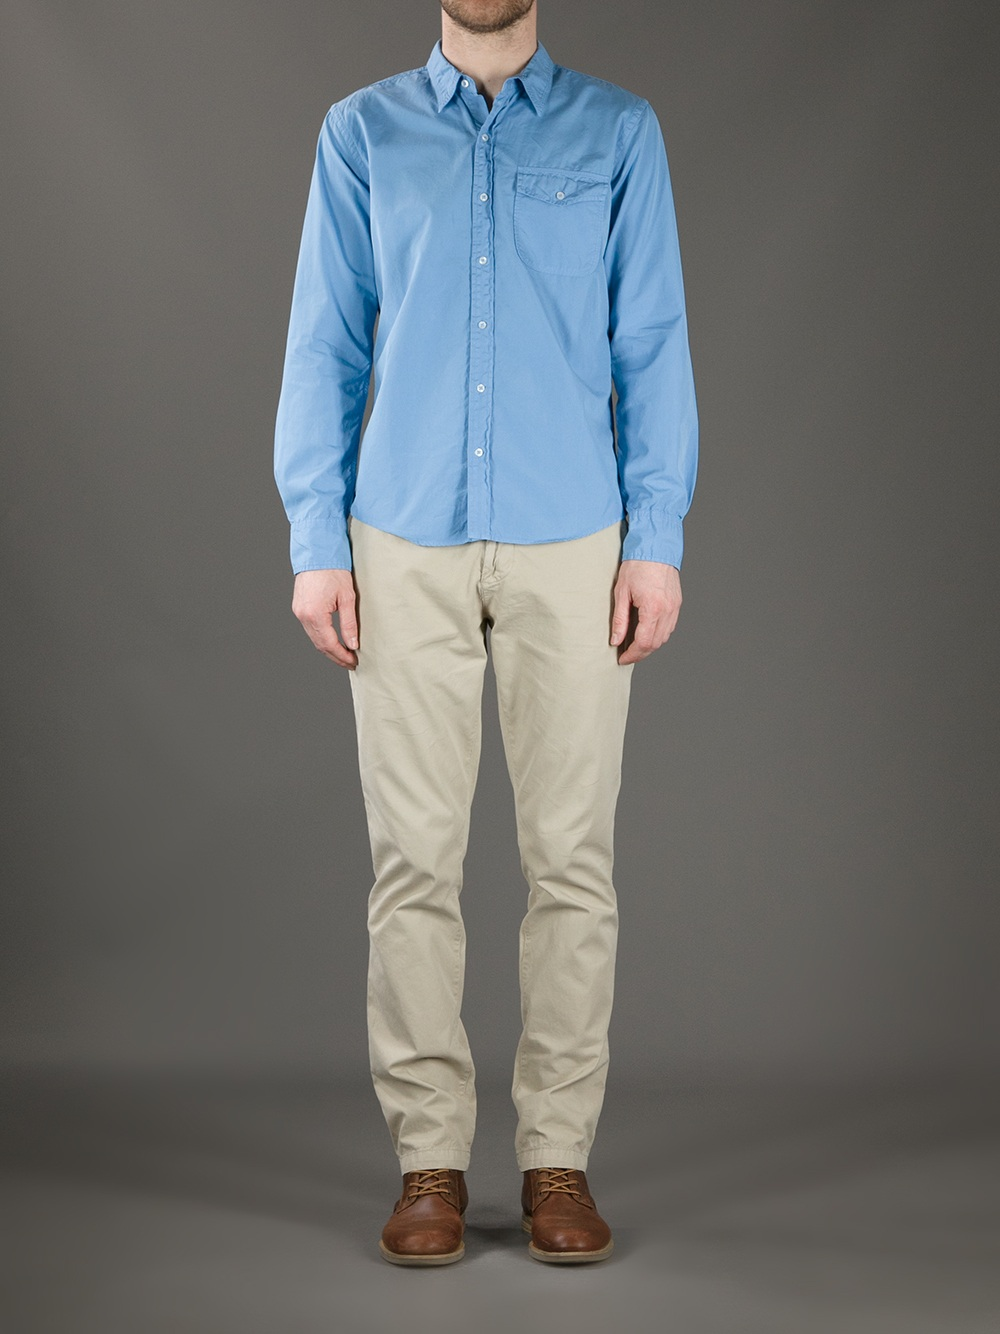 Lyst Save Khaki Button Down Shirt In Blue For Men